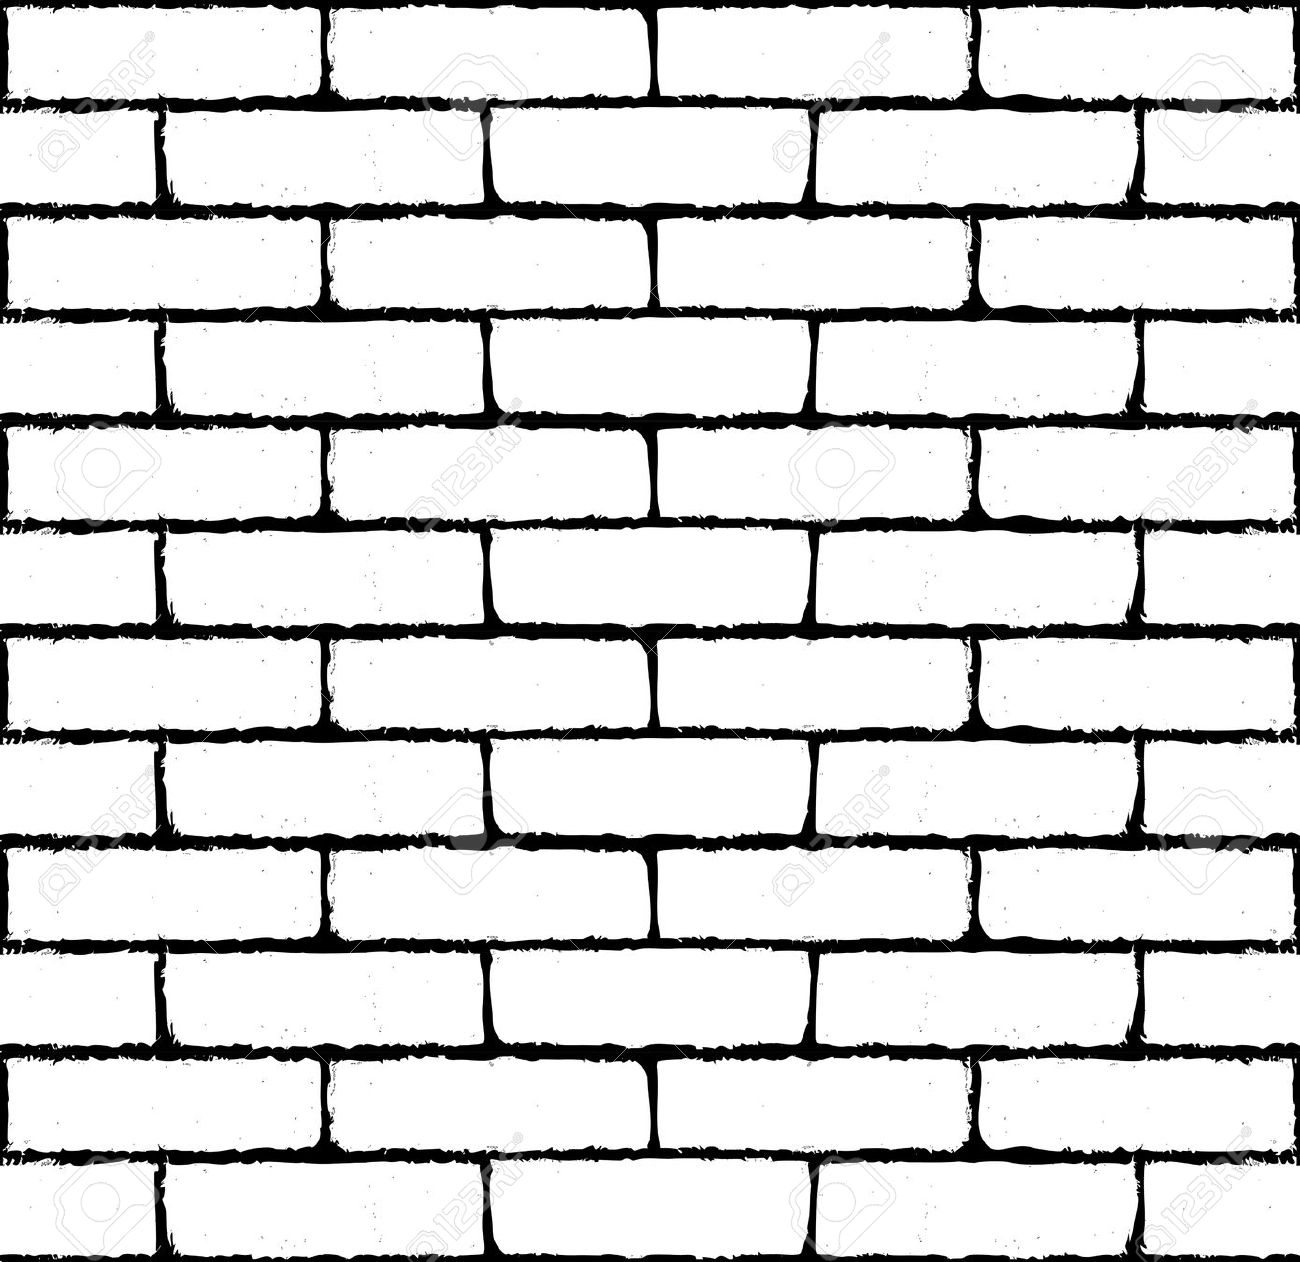 Brick wall clipart silhouette.